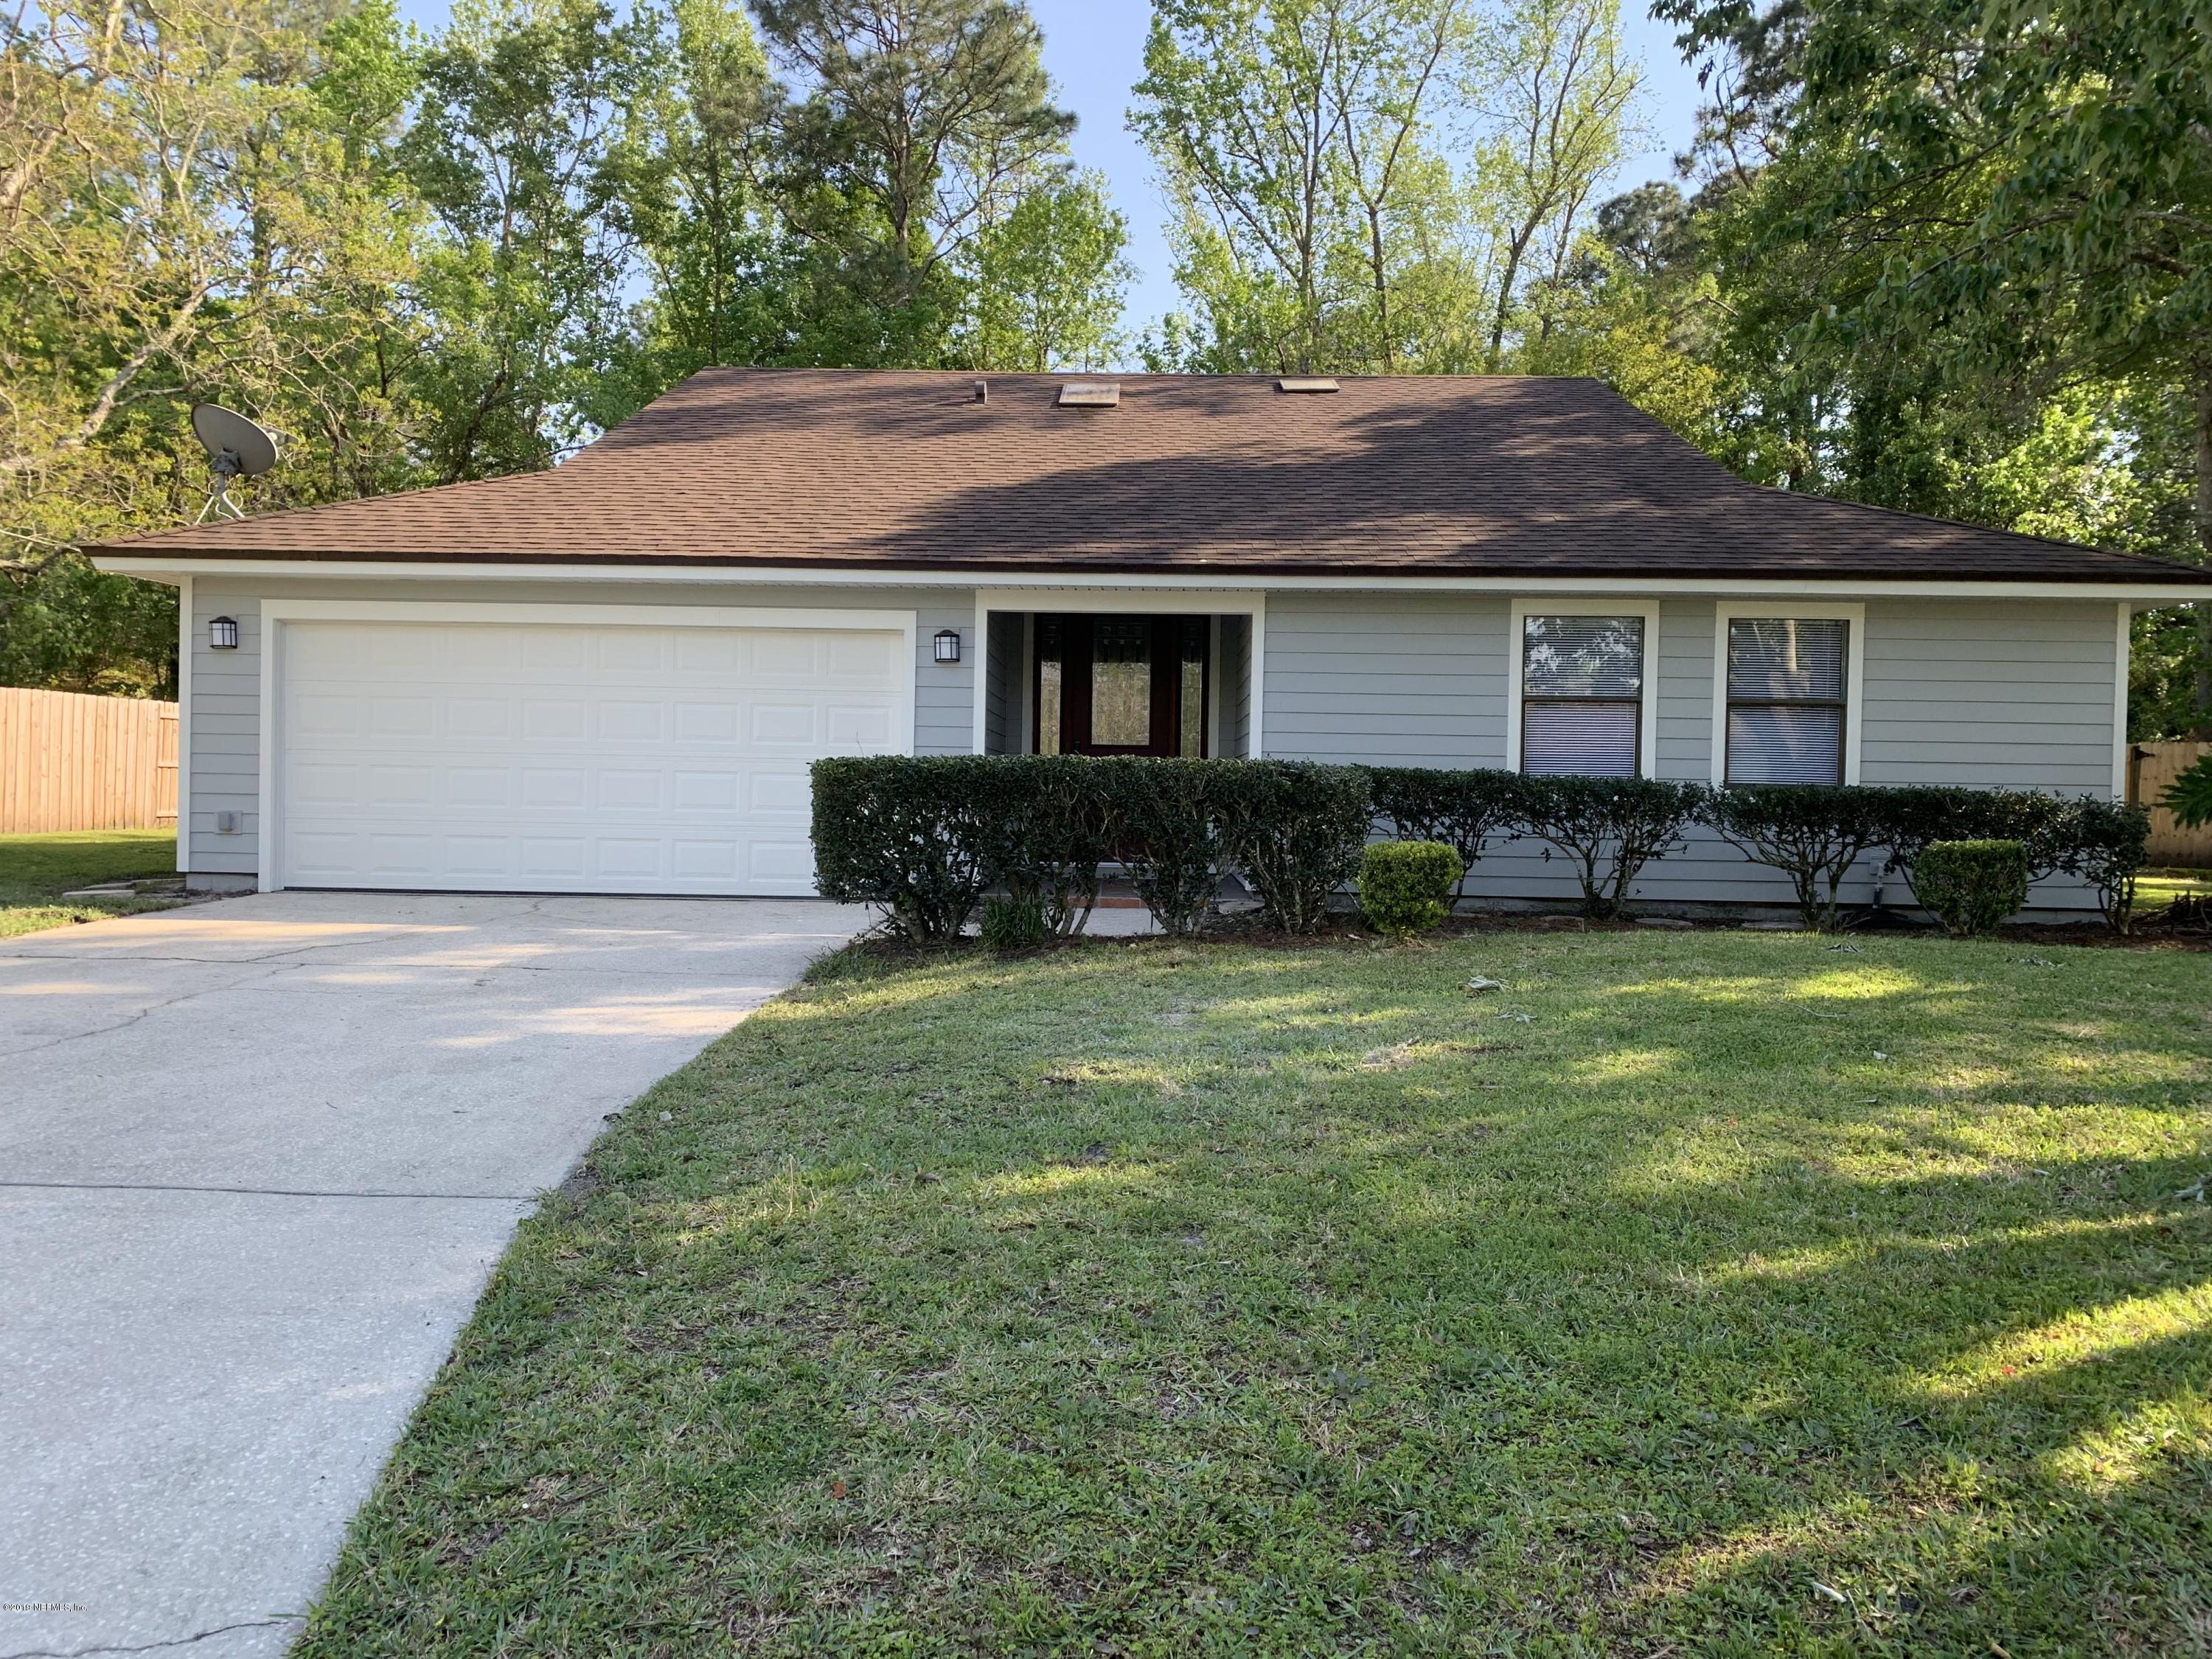 4926 MEGANWOOD, JACKSONVILLE, FLORIDA 32257, 4 Bedrooms Bedrooms, ,2 BathroomsBathrooms,Residential - single family,For sale,MEGANWOOD,985948